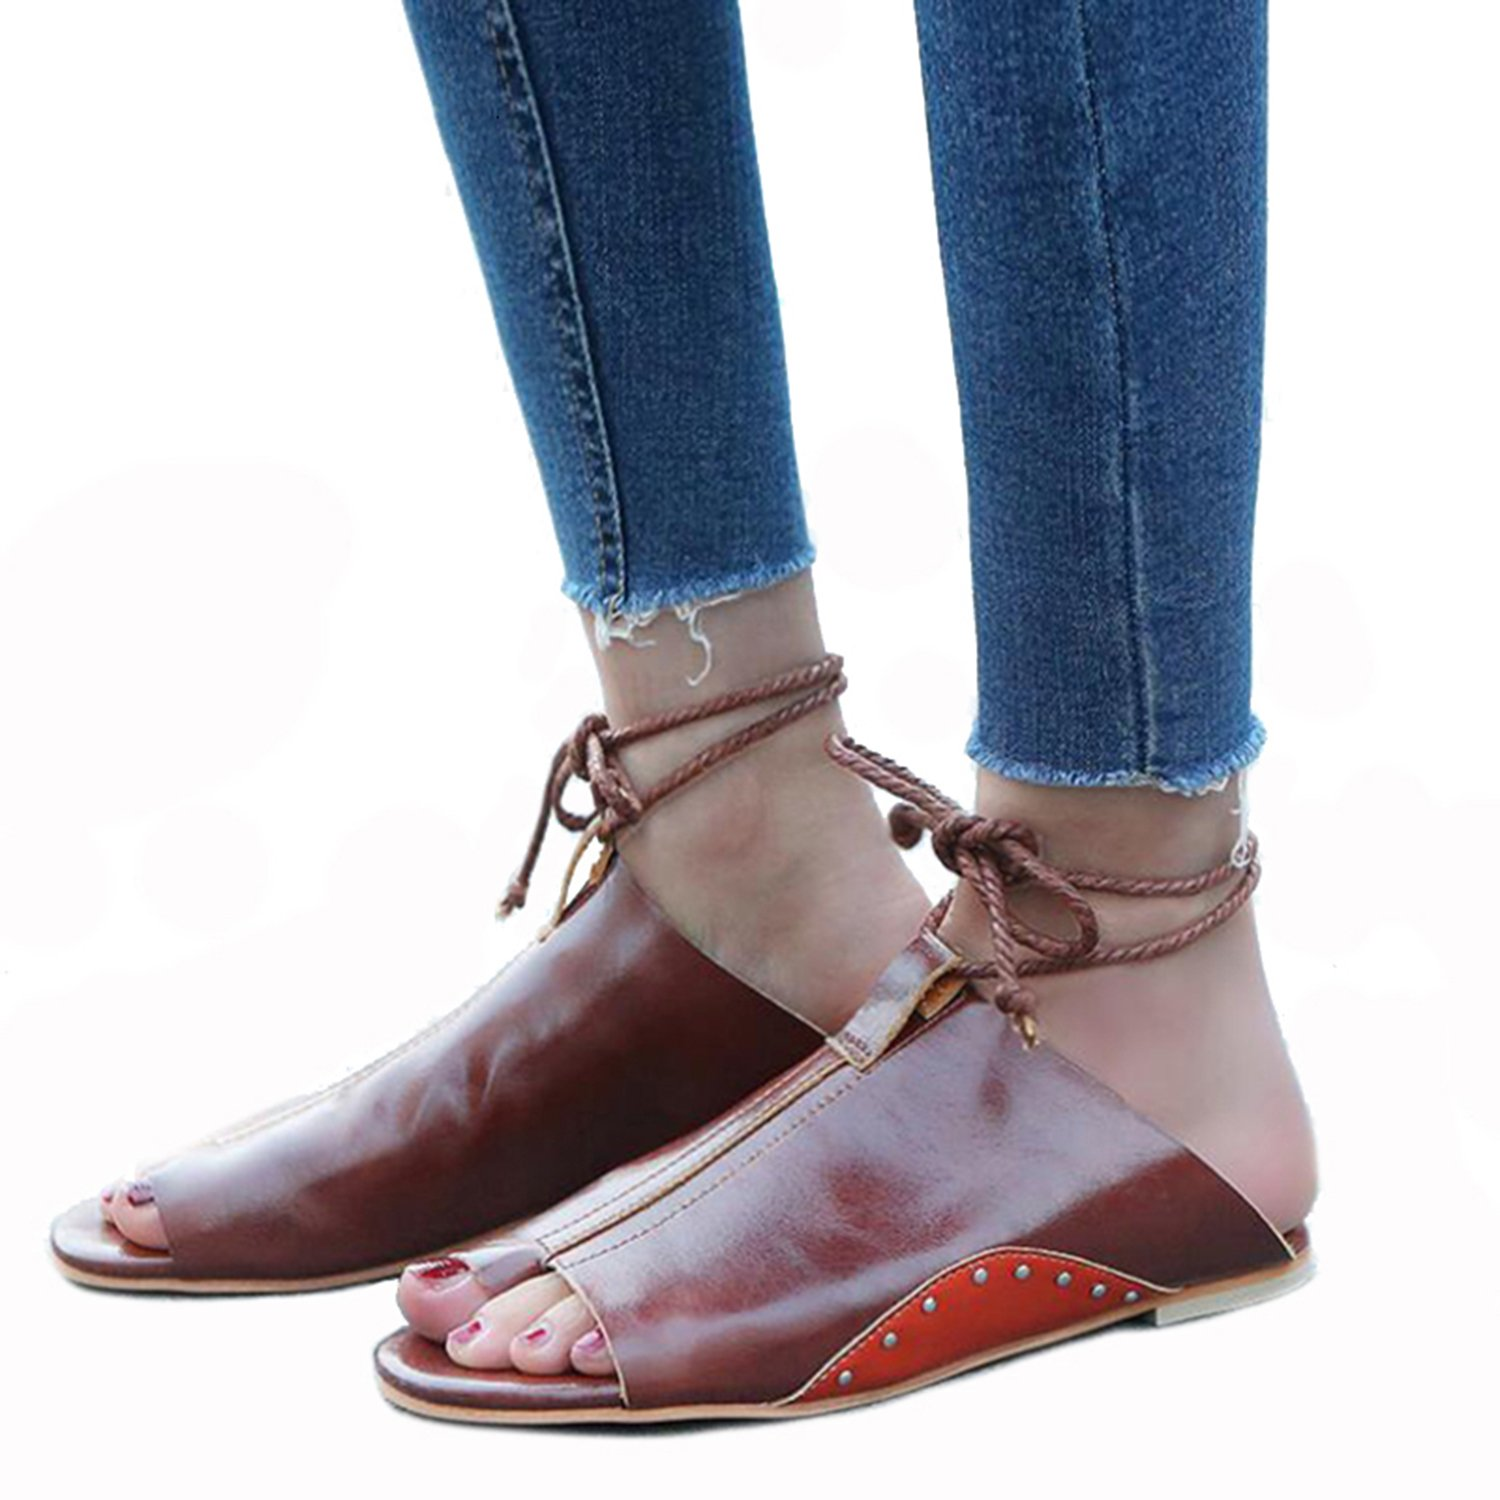 Yamed 2018 Ankle Strap Womens Sandals Vintage PU Leather Rivets Flip Flops Lace Up Ladies Summer Casual Flat Shoes